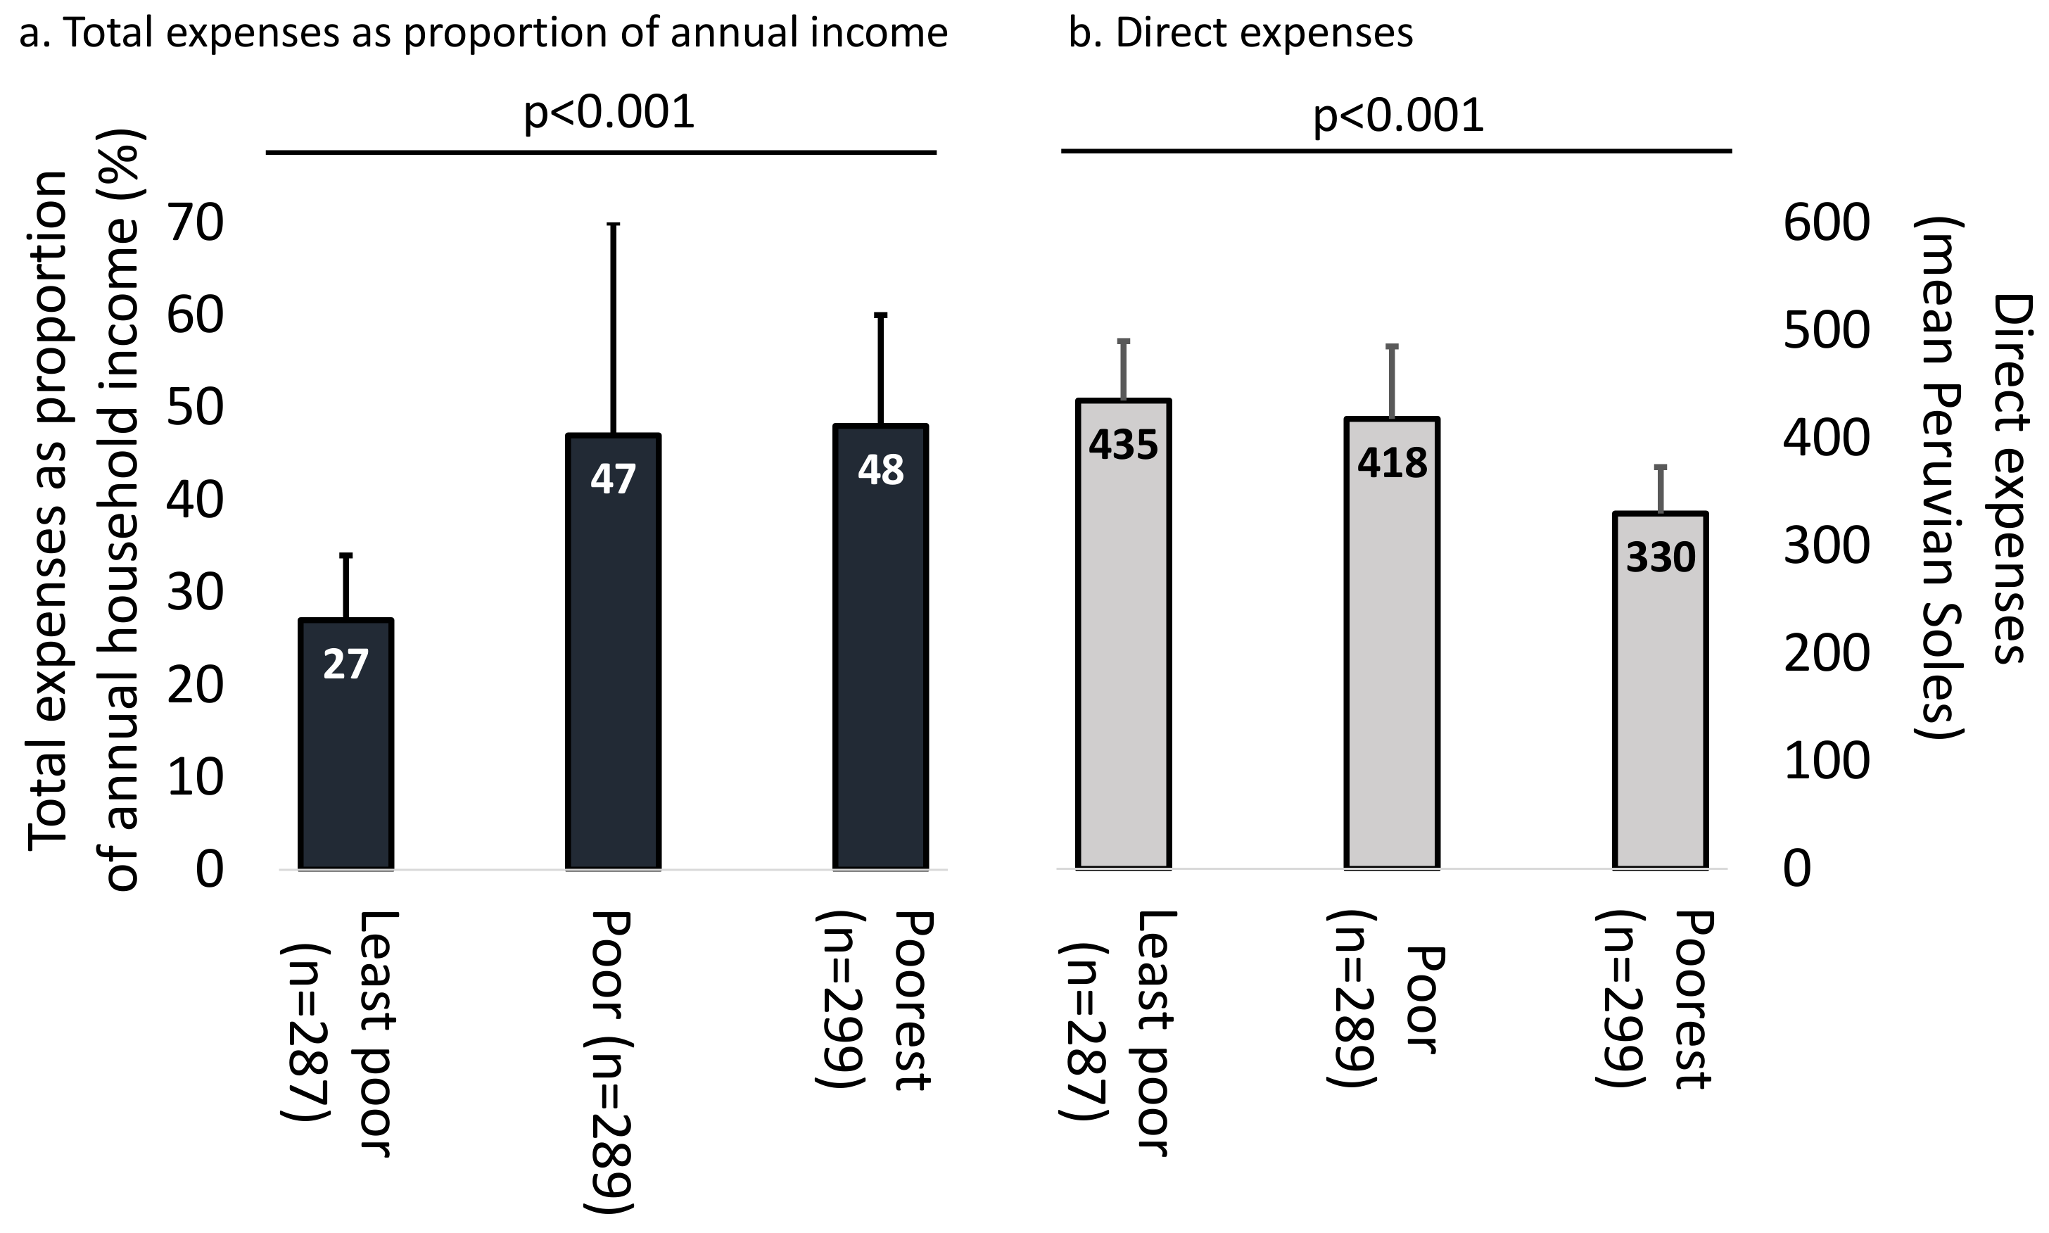 Expenses and economic burden of TB illness across poverty terciles.